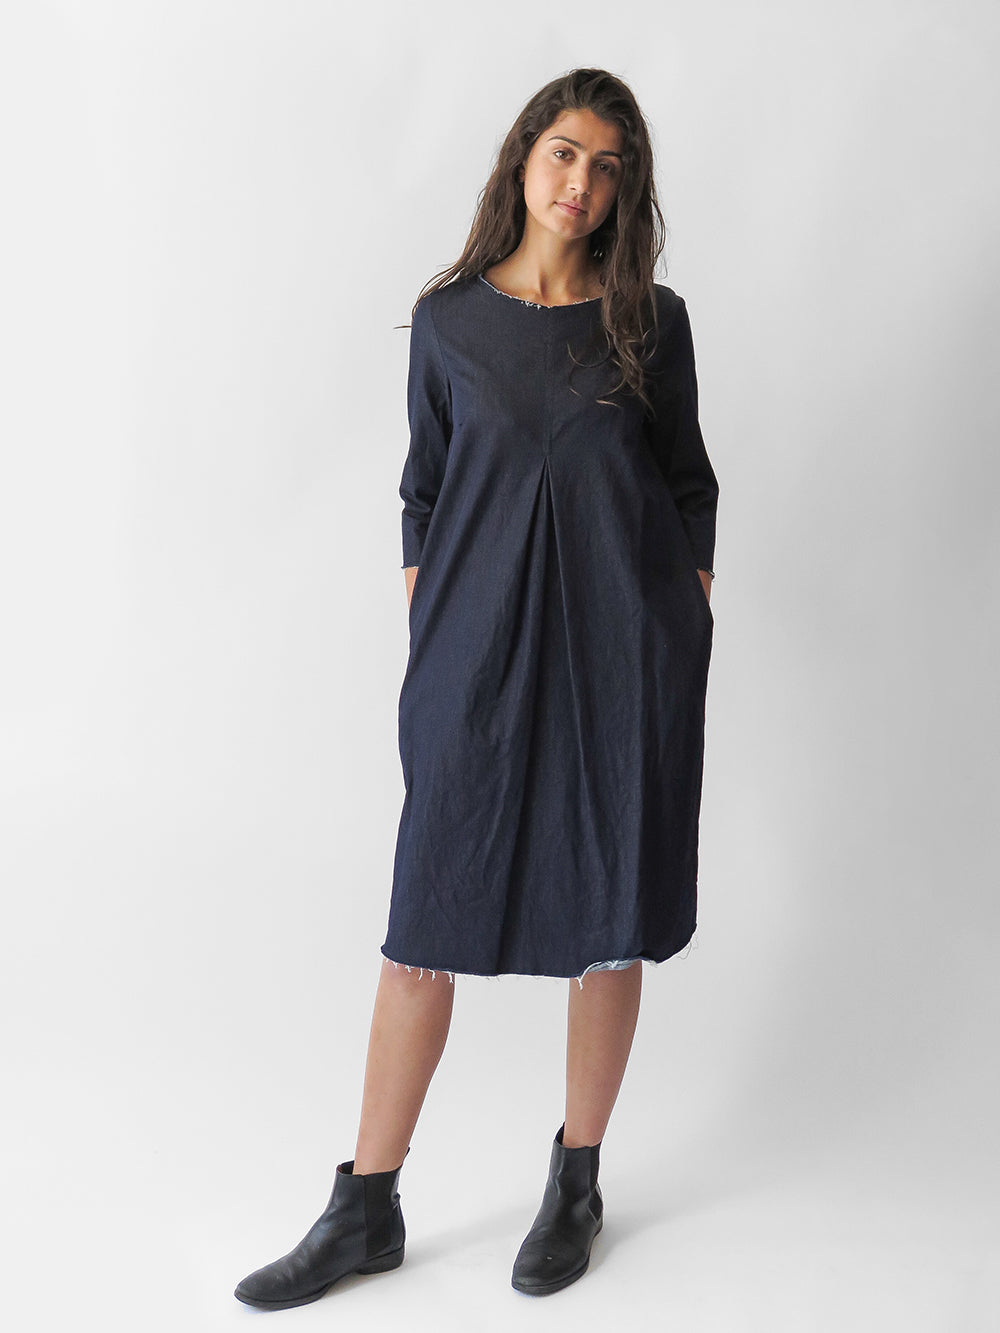 signature a-line dress in stretch dark denim with side pockets & 3/4 length sleeves. features pleated front & modern raw edges. our essential & timeless piece is ideal for seasonal & day-to-evening transition. shown with a casual ankle boot, can work with a wingtip or strappy heel. made in usa.